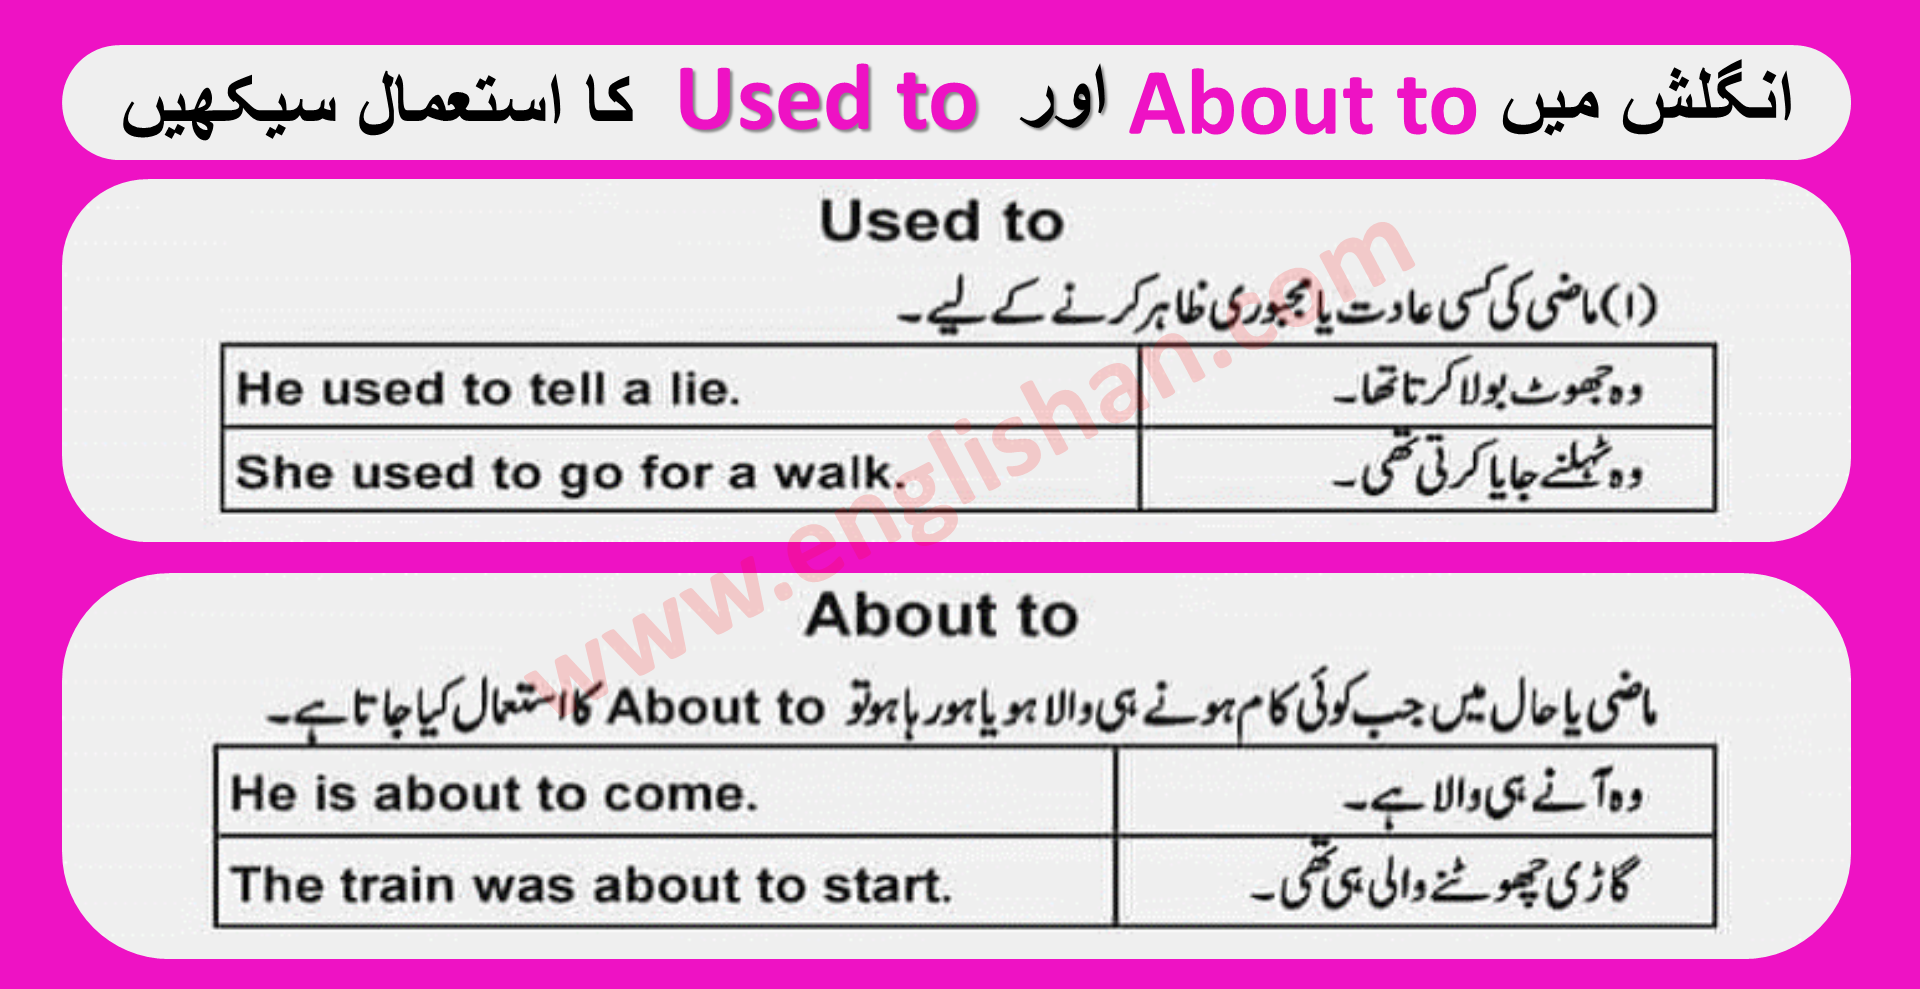 List of Modal Verbs Used to and About to with Examples PDF